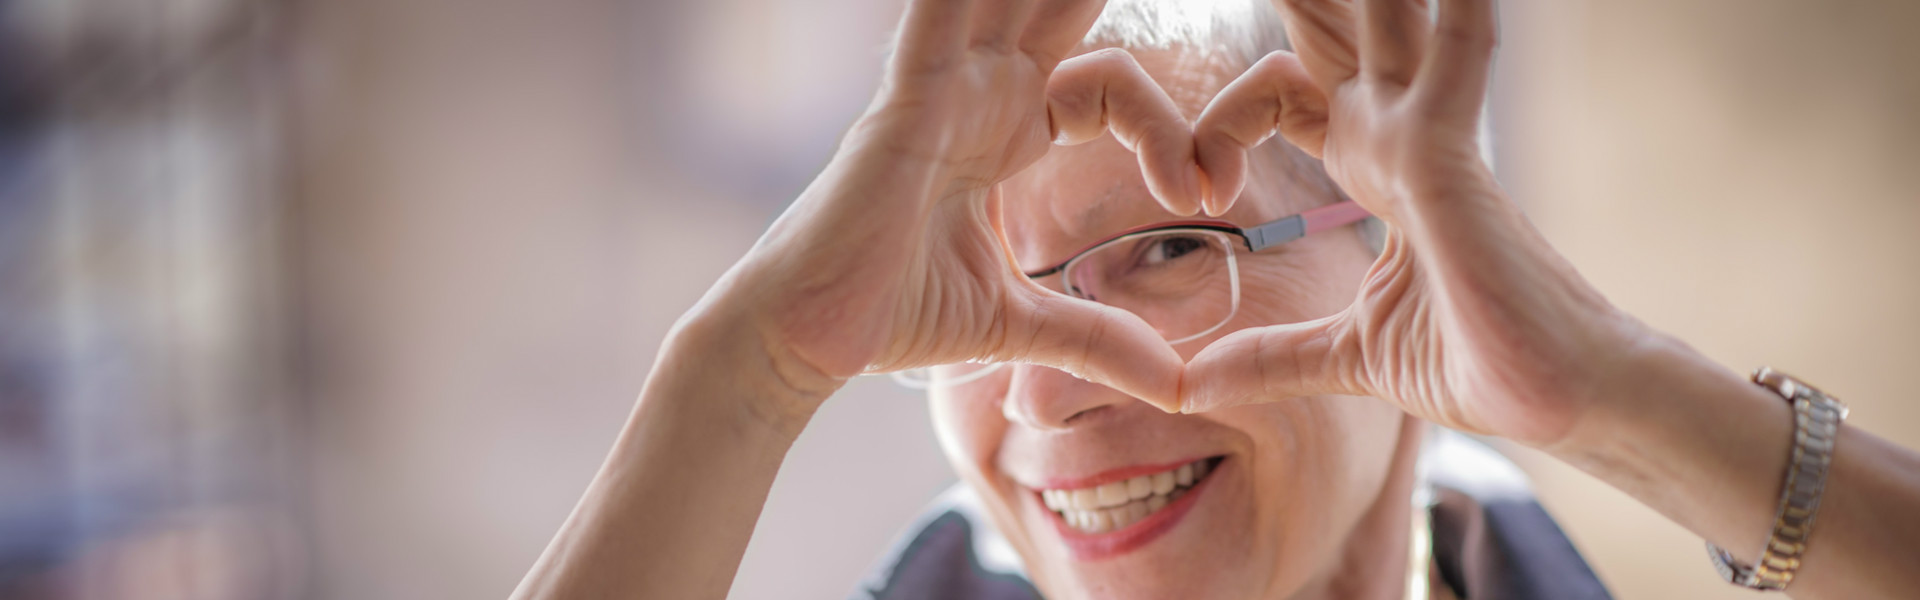 Woman smiling and making the shape of a heart with her 2 hands.